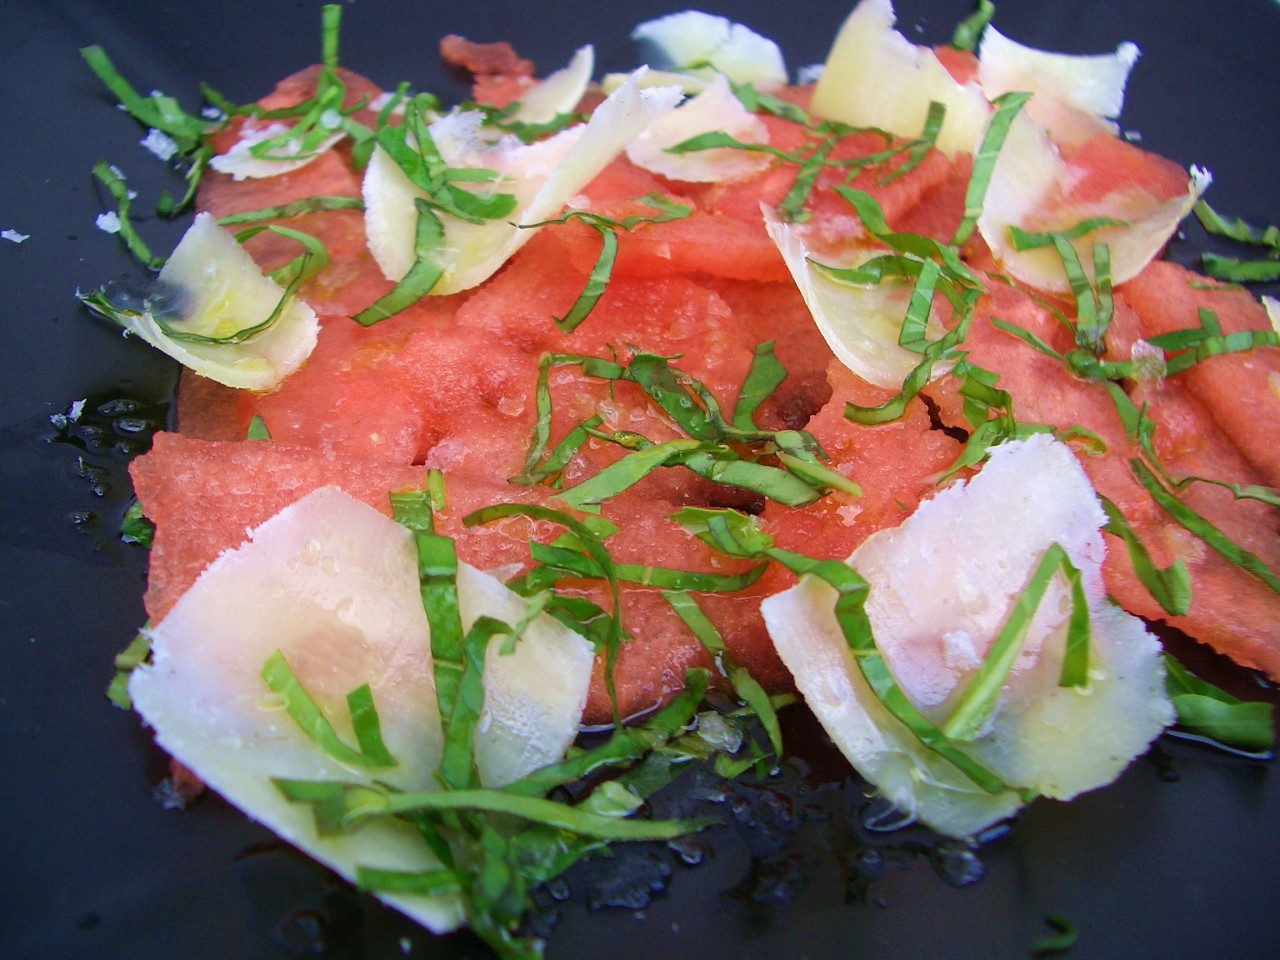 Carpaccio de Sandía – Watermelon Carpaccio